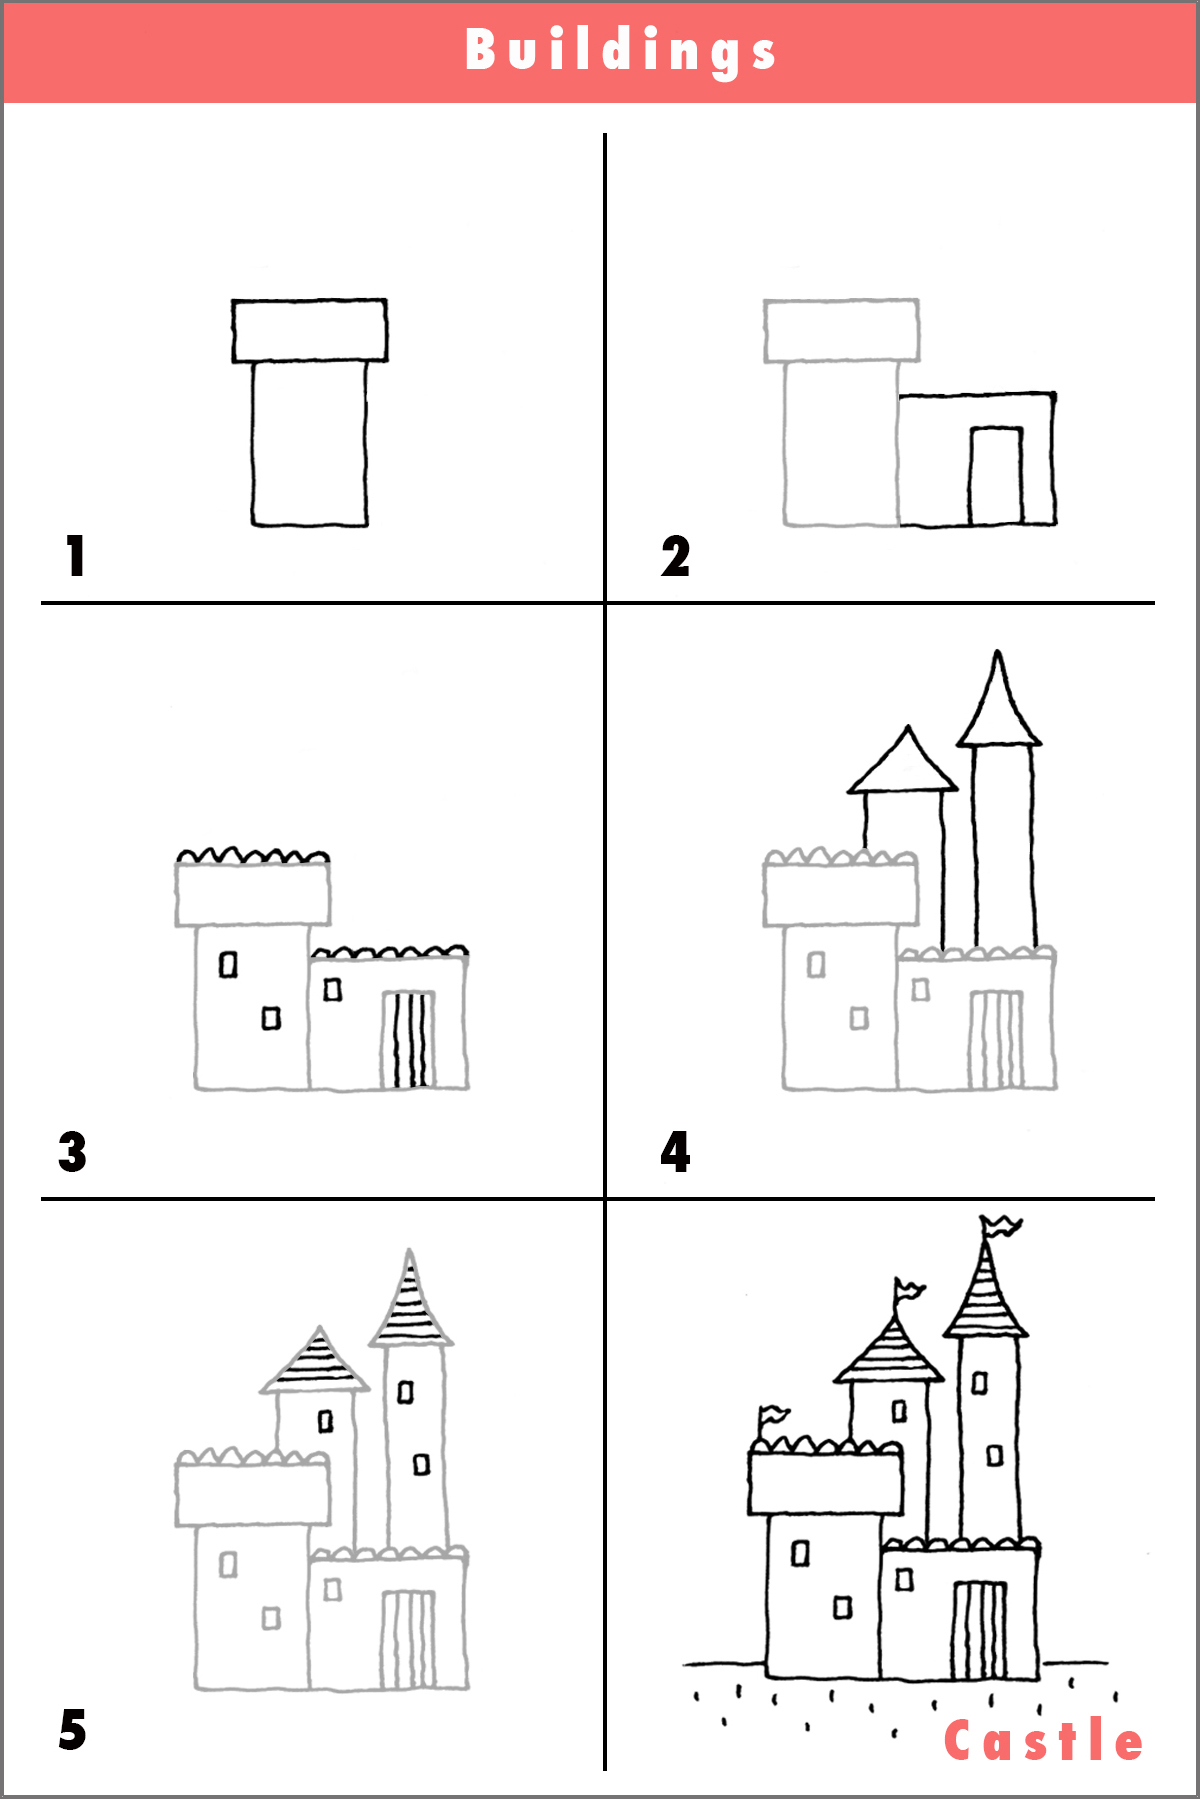 Castledrawdrawingpencilsketchquickstep By Step Cartoon Fun